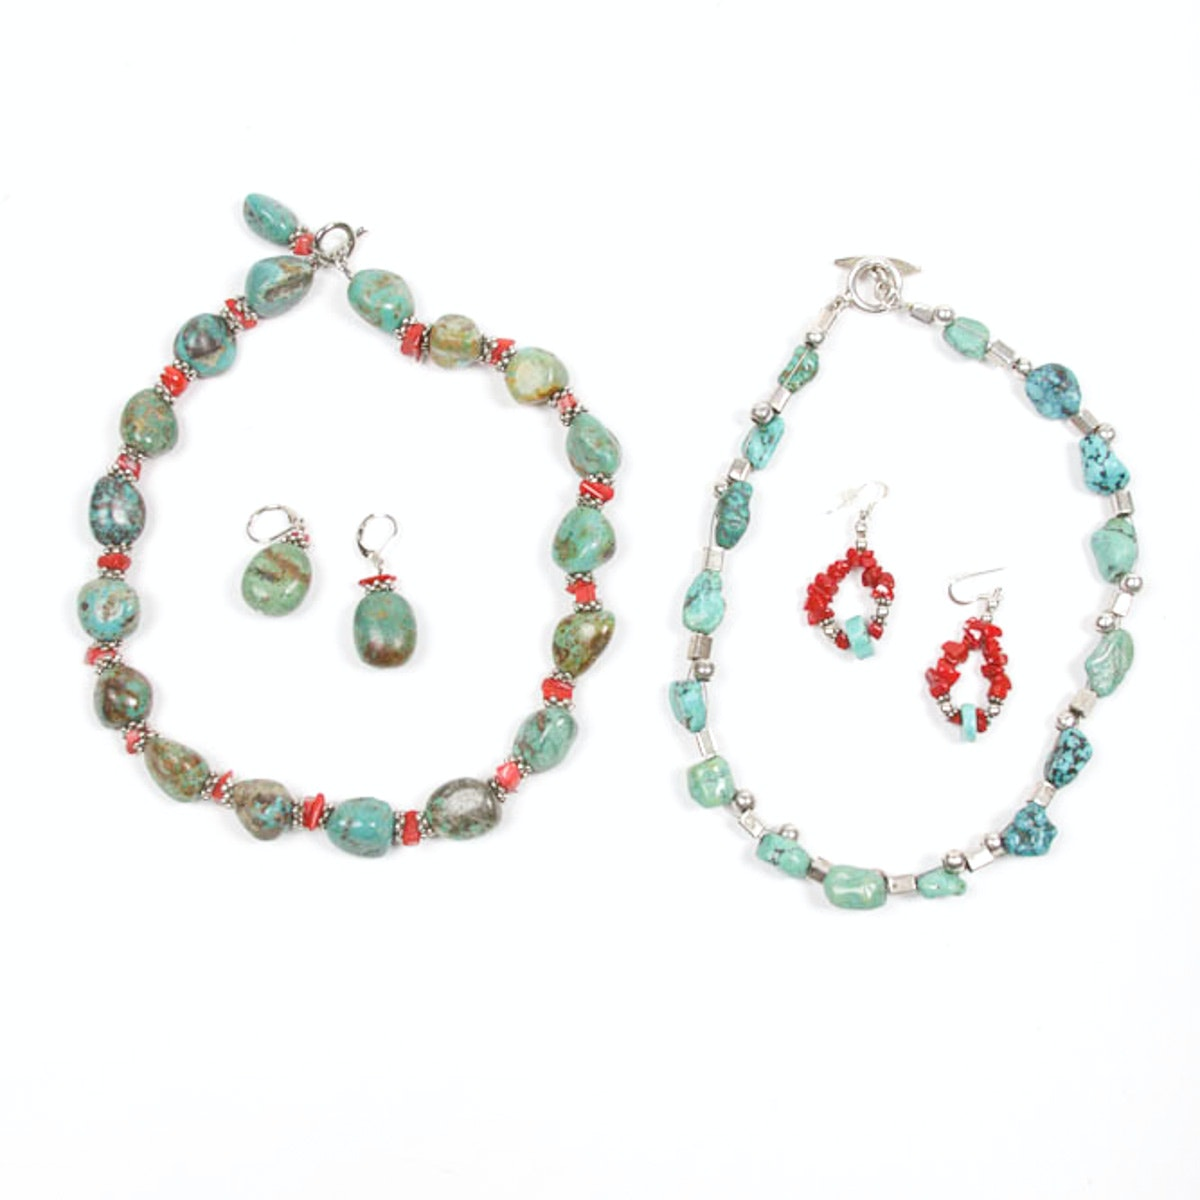 Collection of Sterling, Turquoise and Coral Necklaces and Earrings